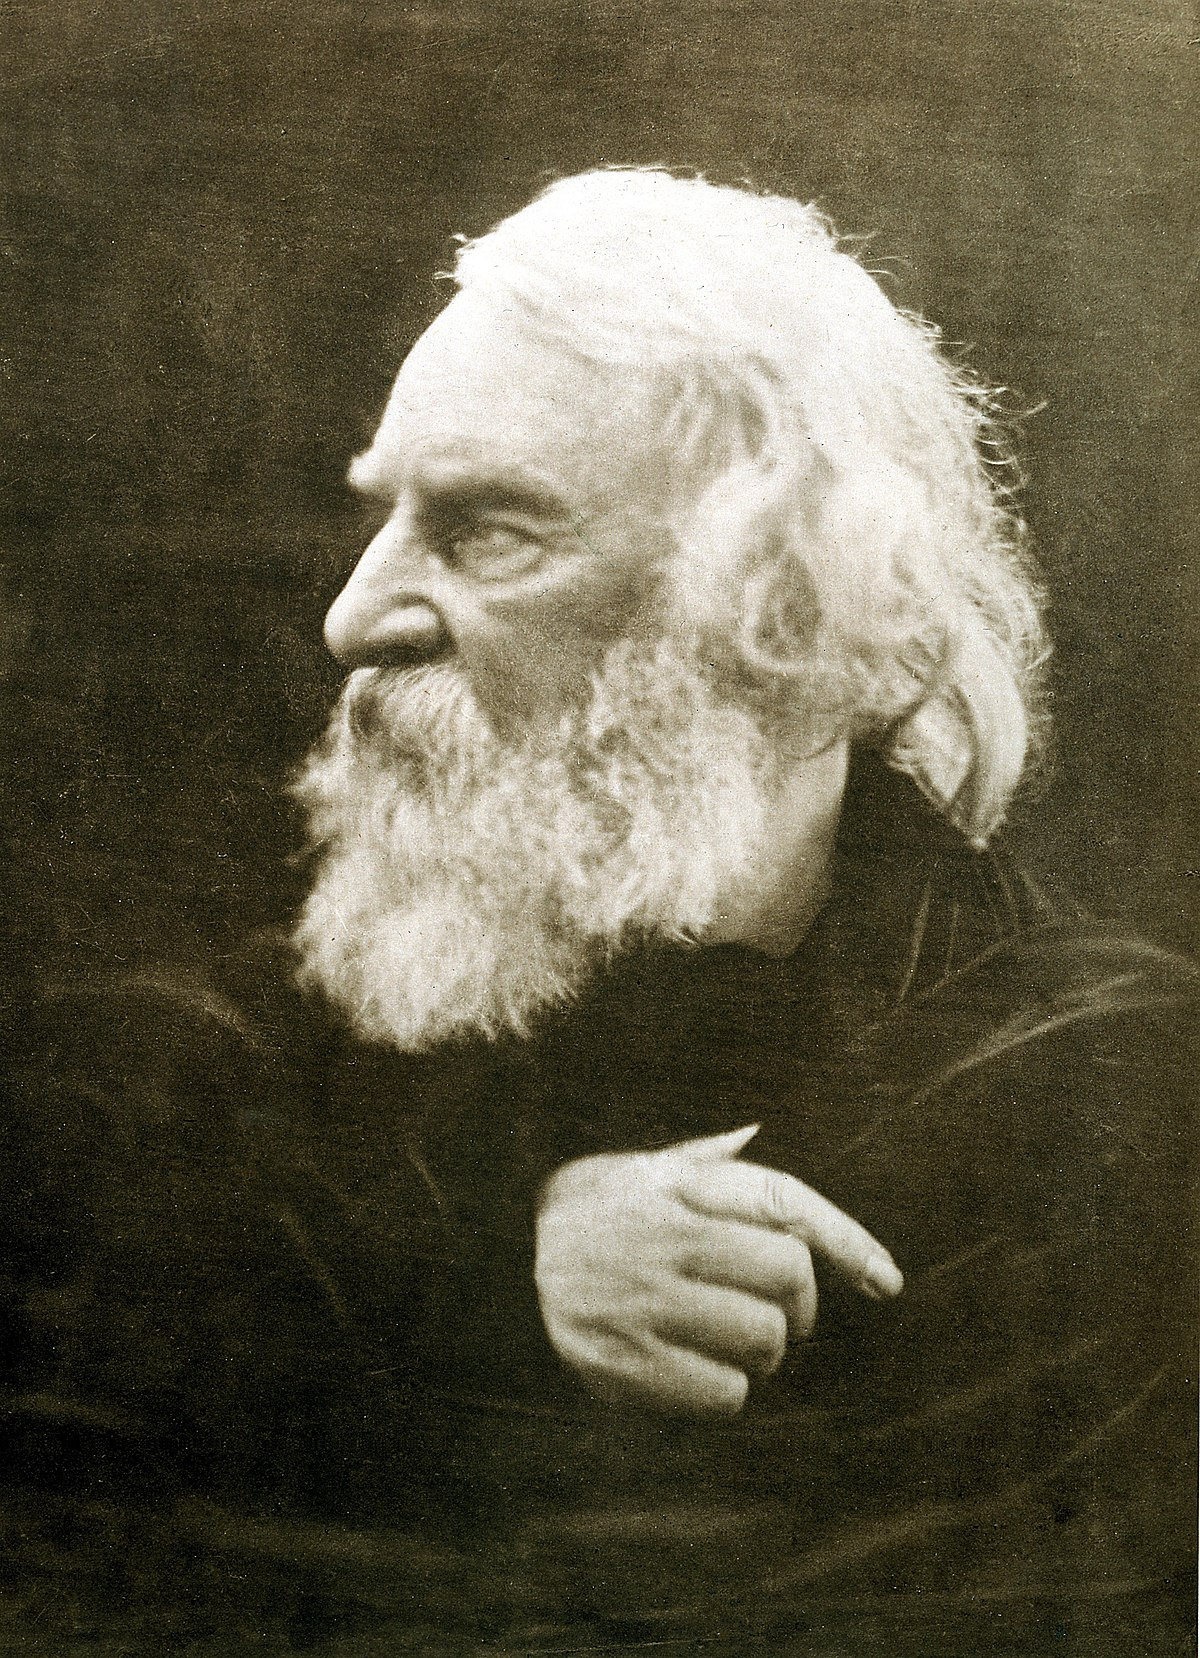 Henry Wadsworth Longfellow Wikipedia